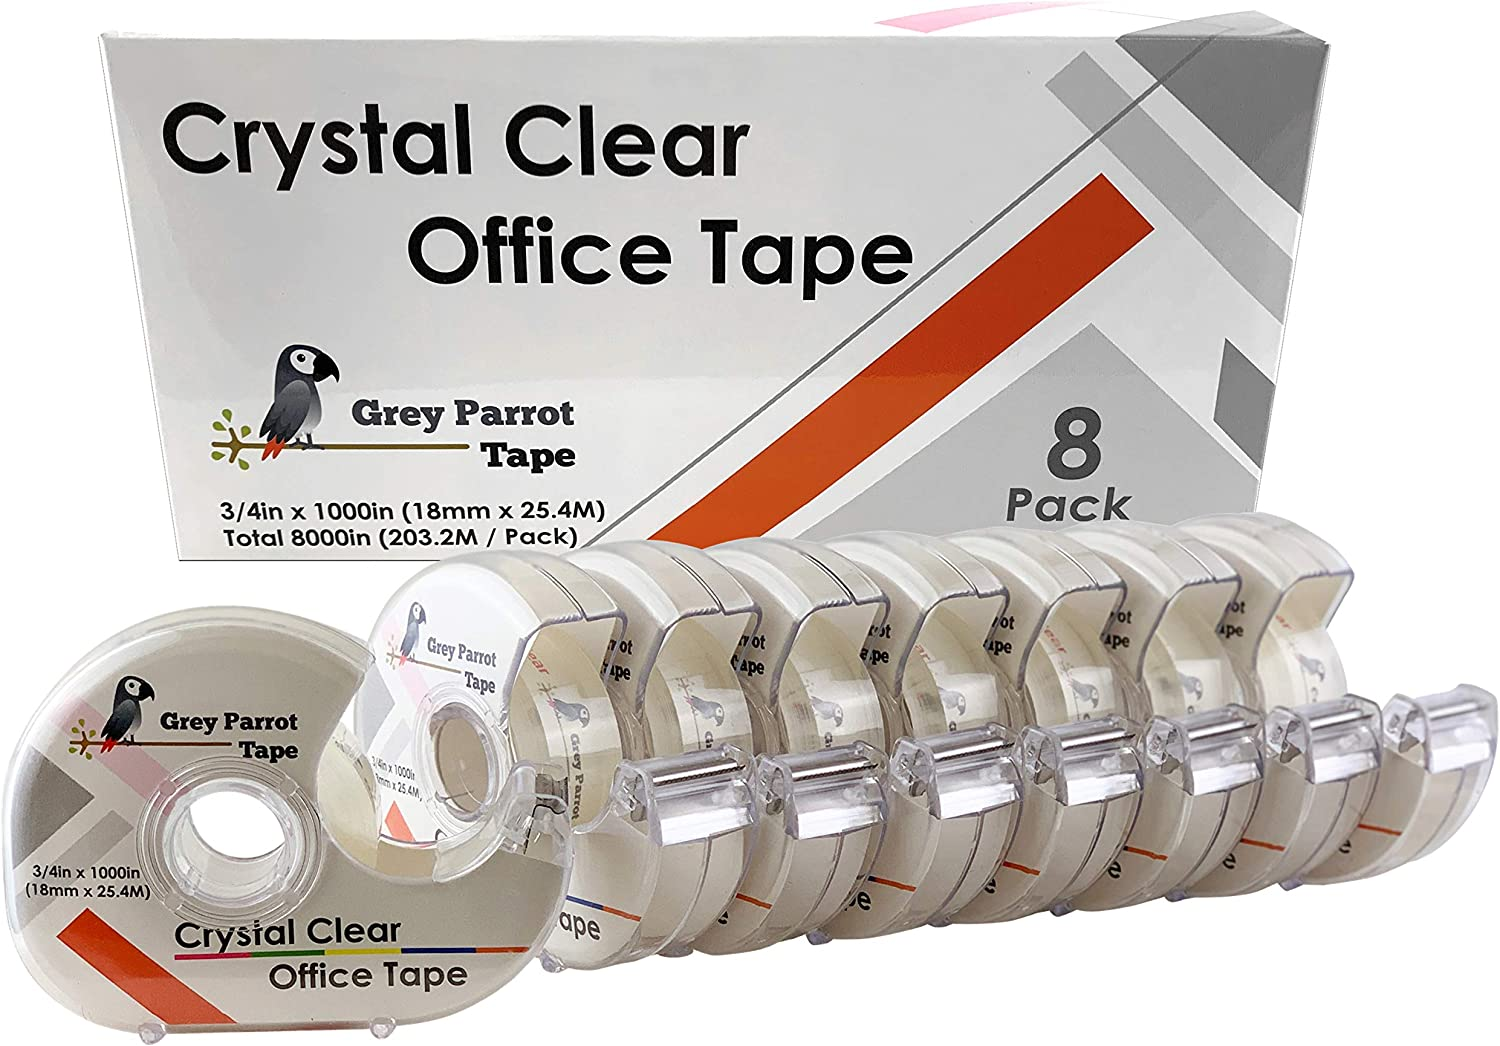 """Greyparrot Office Tape Clear Refill Rolls + Dispenser(8 Pack),(3/4"""" X 1000in/pack). for Craft Jobs, Gift Wrapping, Office Work Clear(Transparent) Glossy Finish, Refillable"""